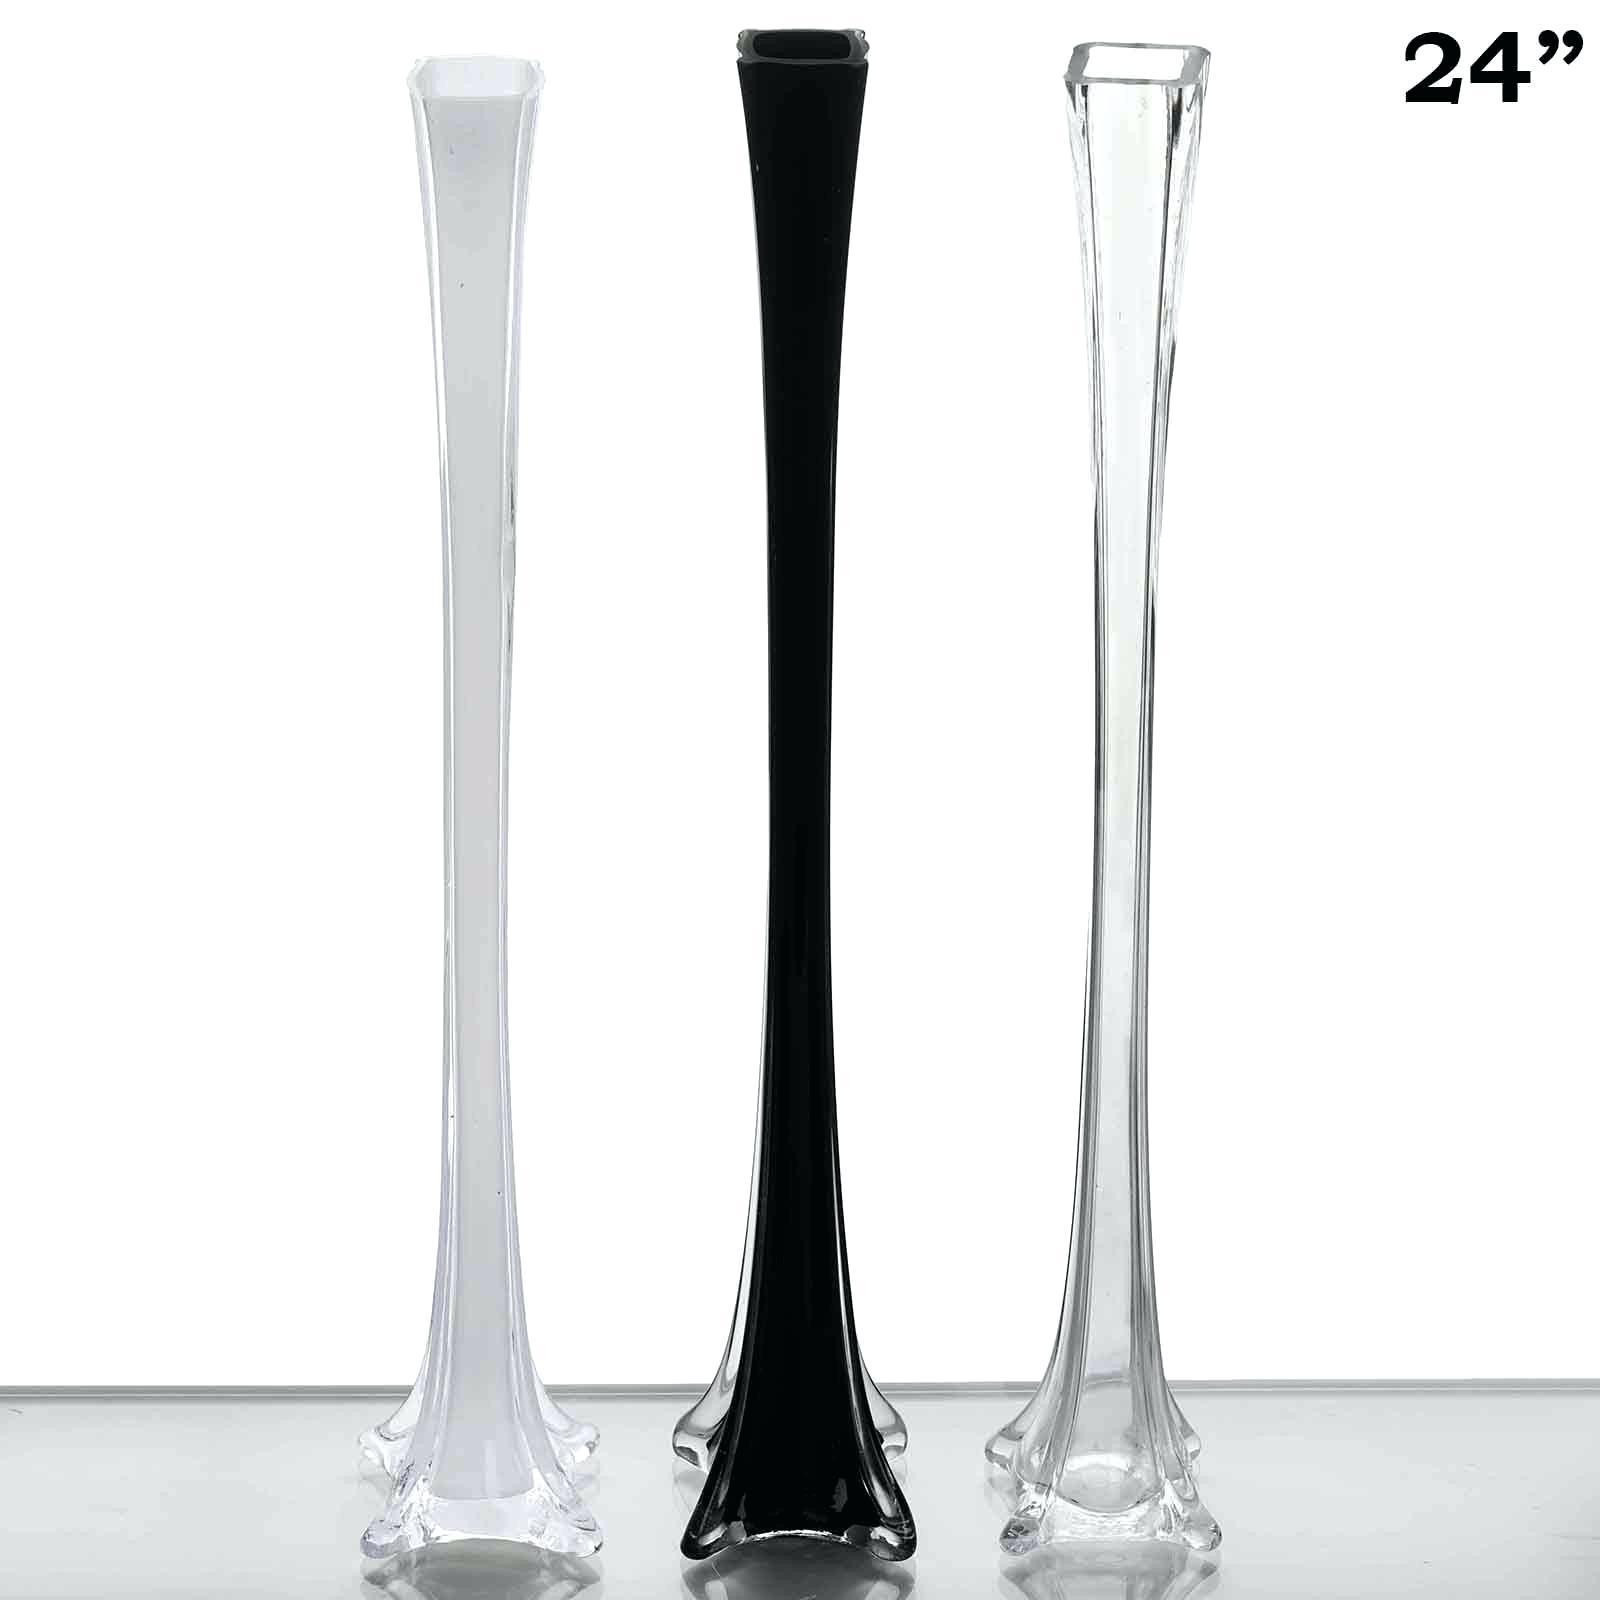 Cut Glass Vases wholesale Of Black Glass Vases Stock Fantastic Chair Decor Ideas From Living Room with Black Glass Vases Stock Fantastic Chair Decor Ideas From Living Room Vases wholesale Awesome